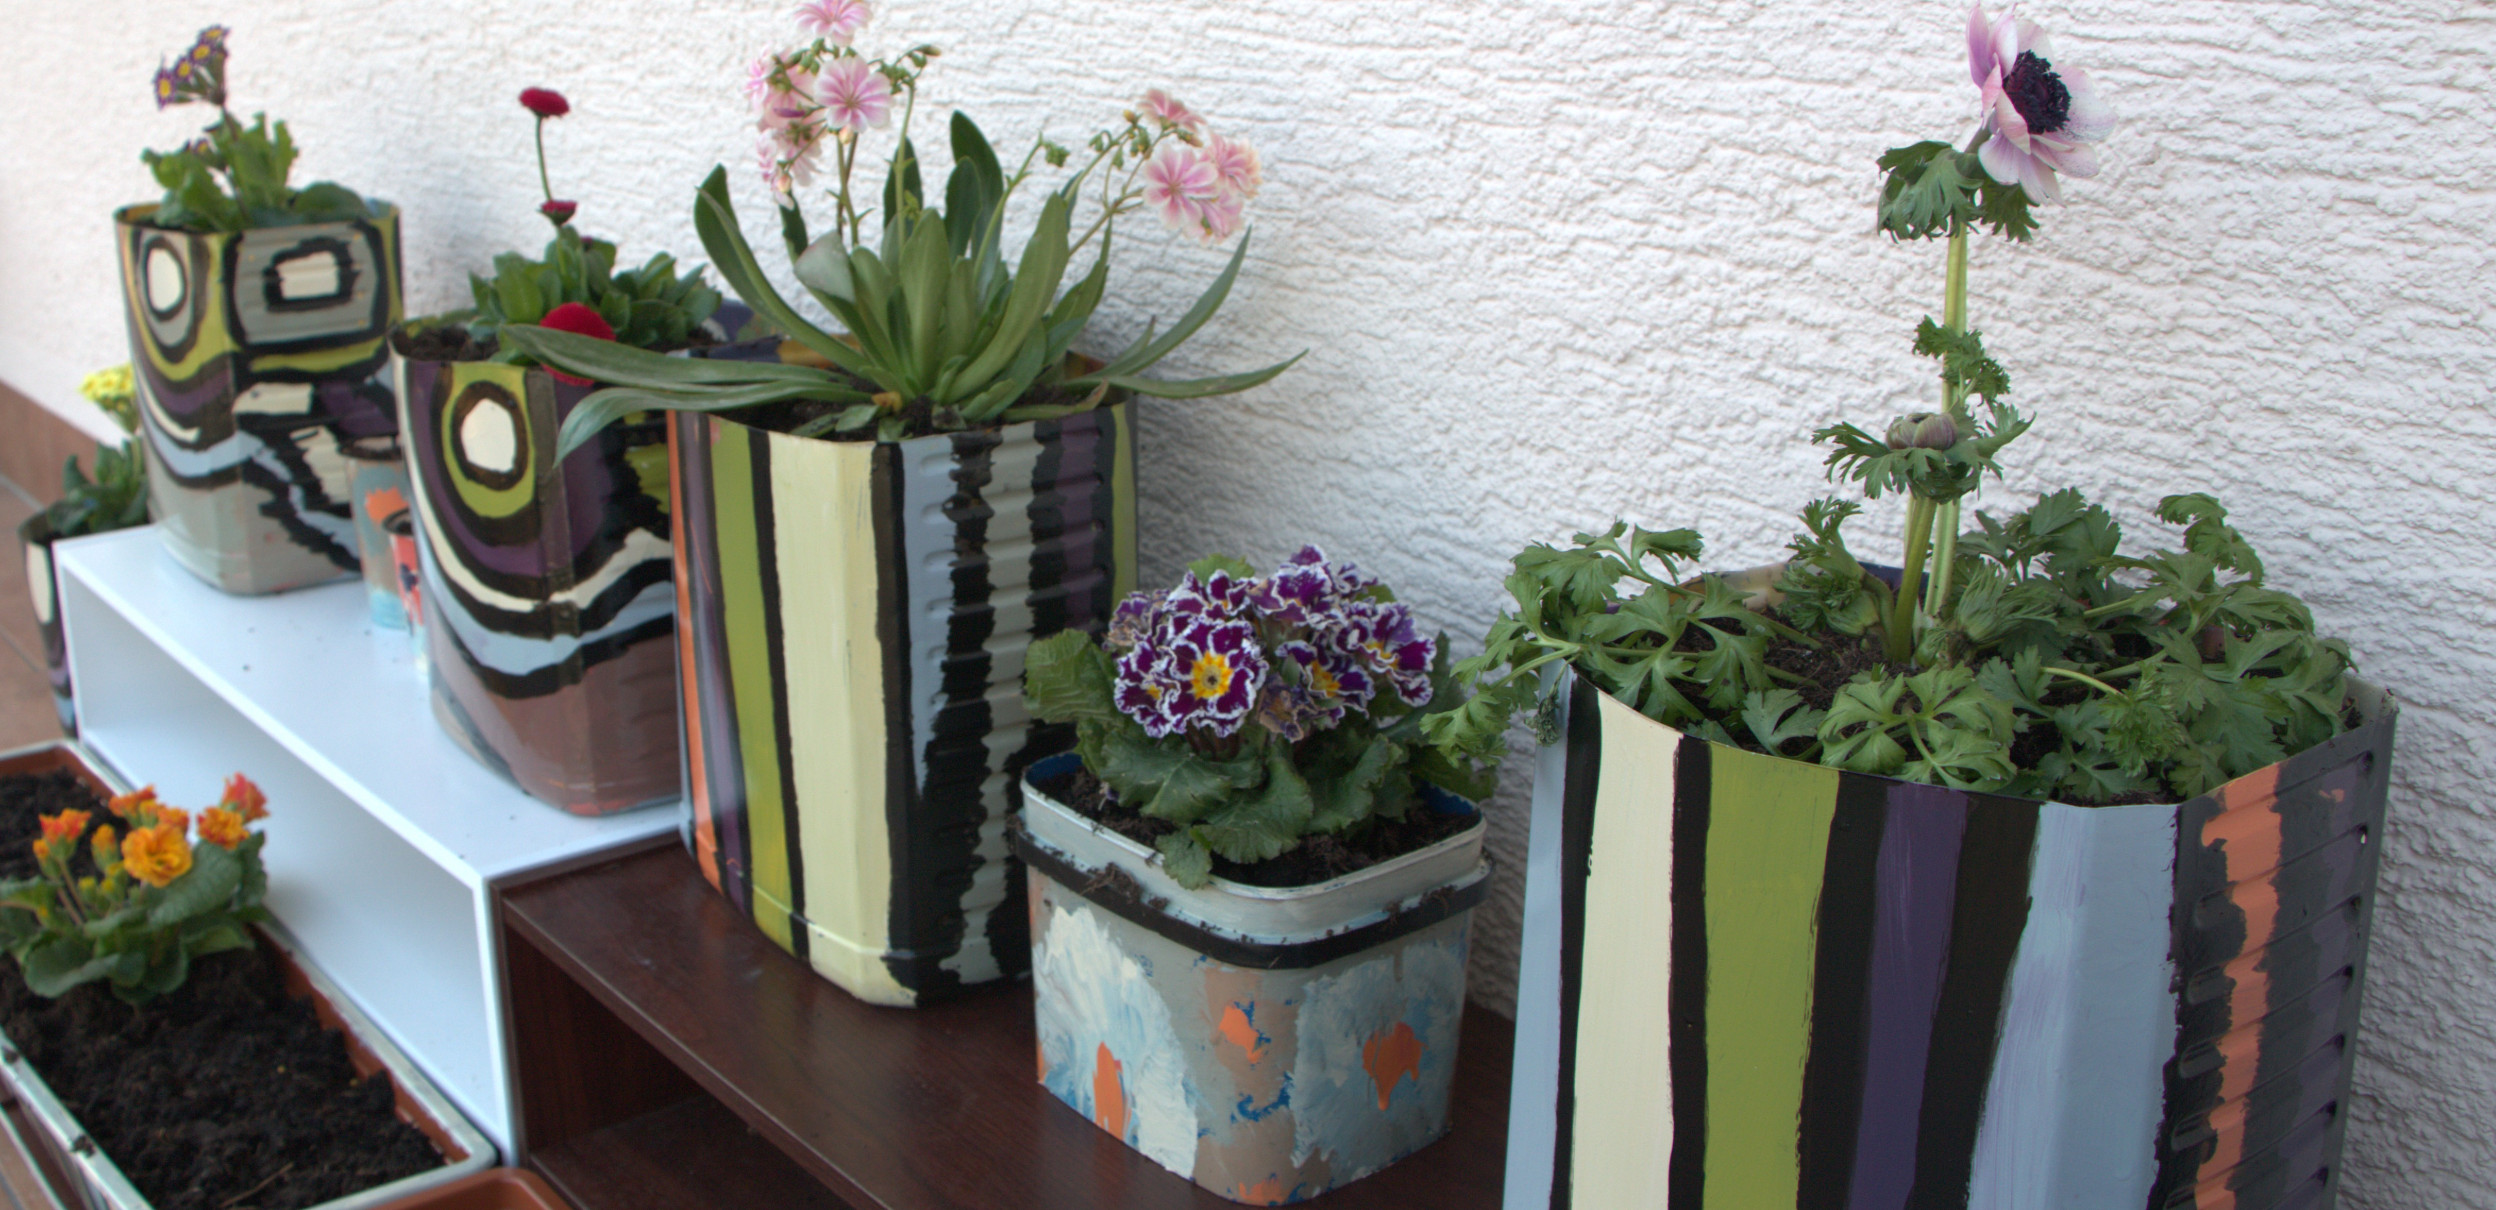 Creation with flower pot.